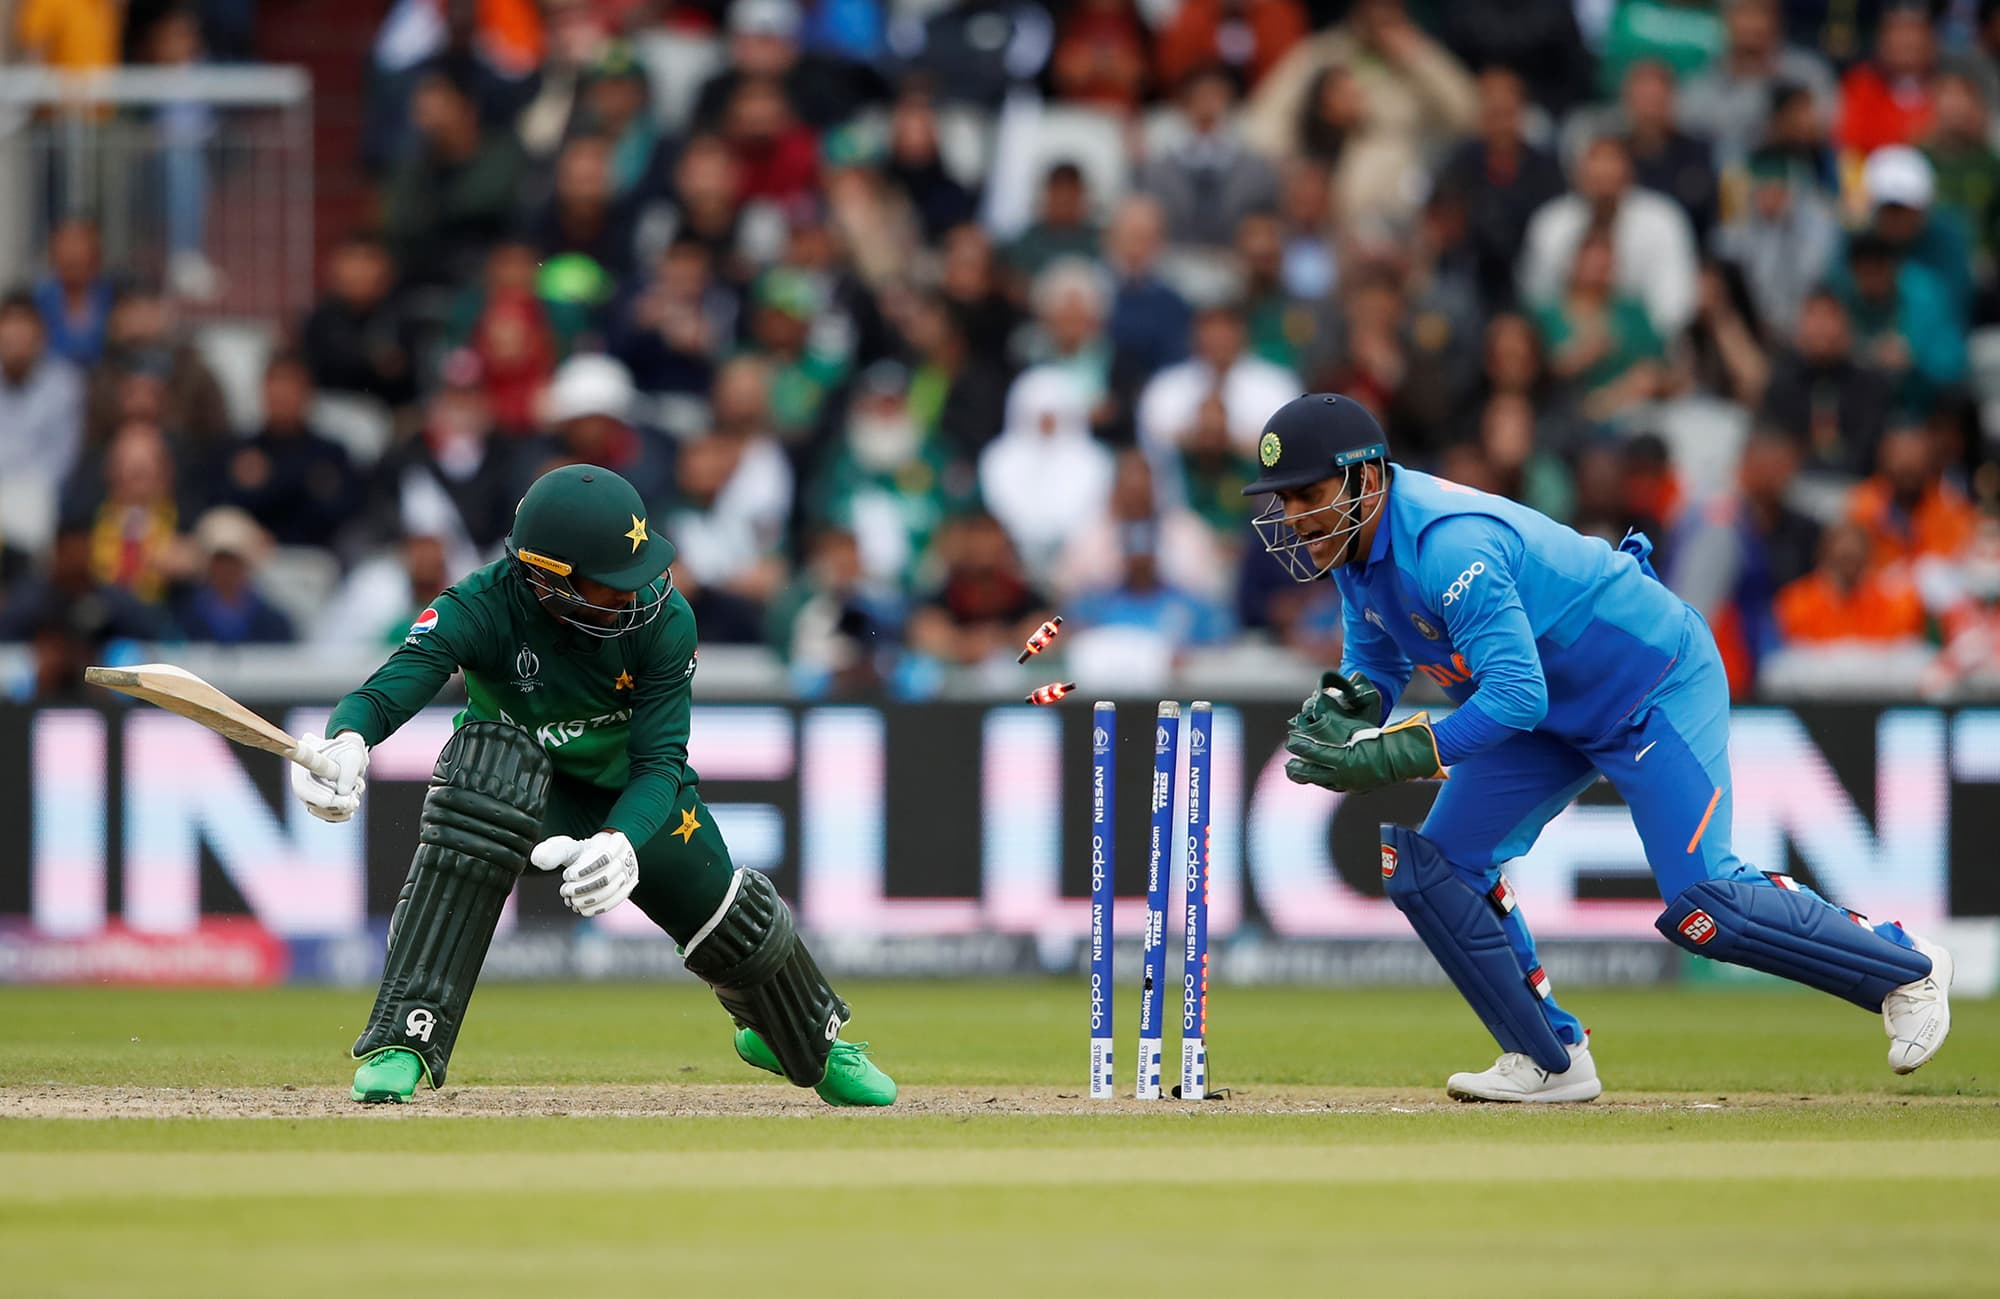 MS Dhoni attempts to stump out Fakhar Zaman. A review found Fakhar not out. ─ Reuters